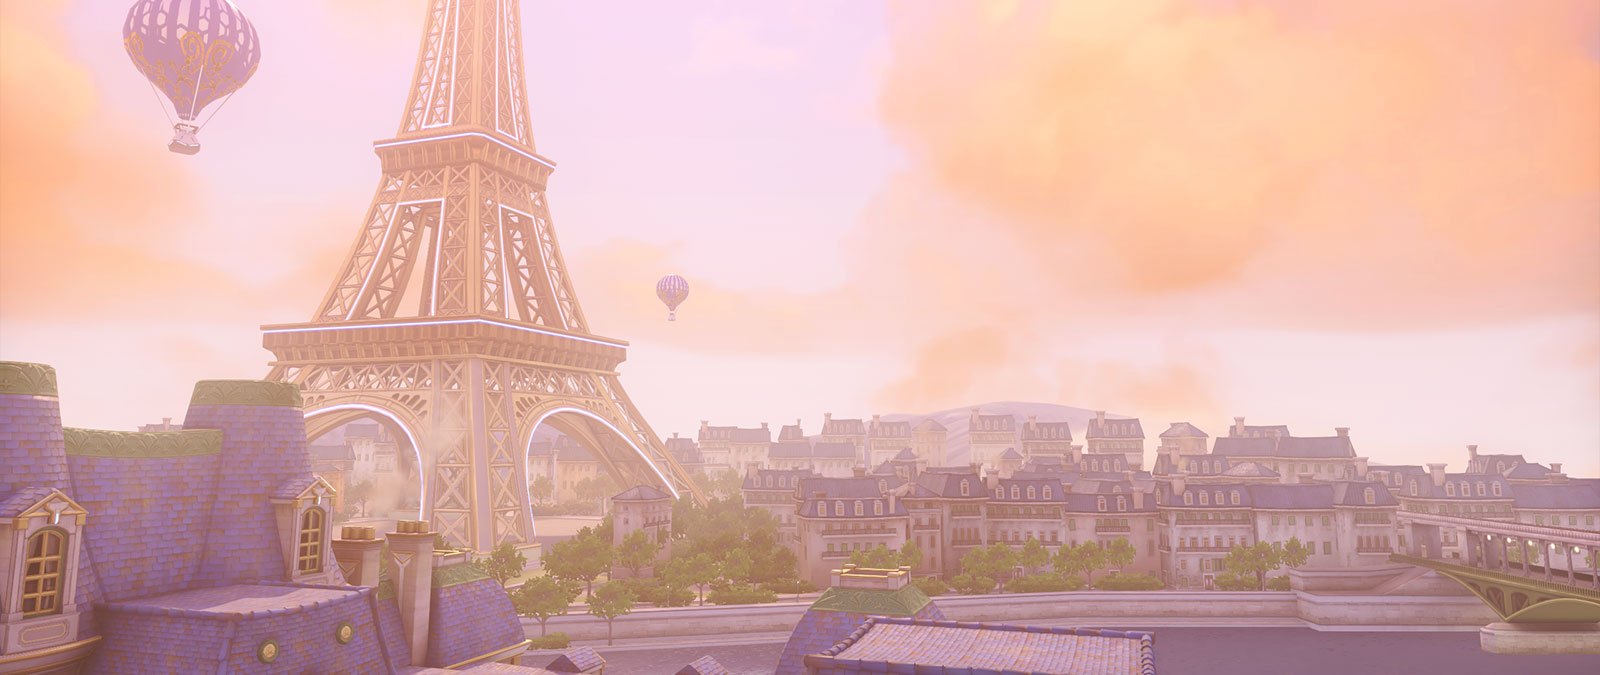 Paris and the Eifel Tower in the sunshine with balloons floating in the sky.